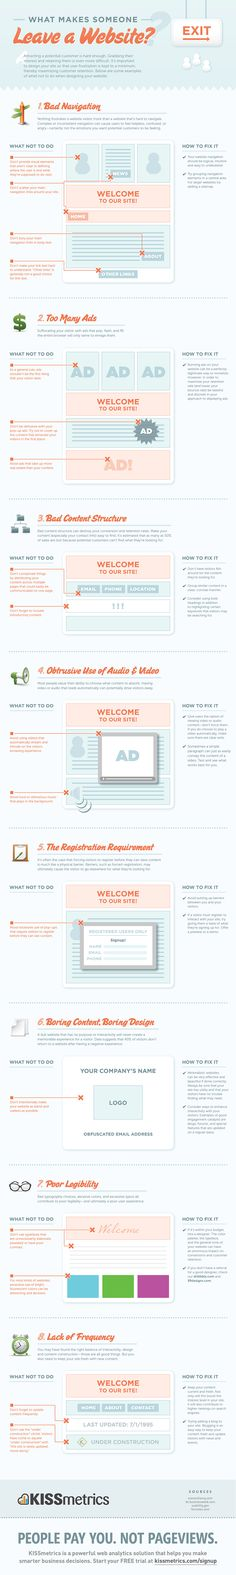 What makes someone leave a website? #infographic #socialmedia #in